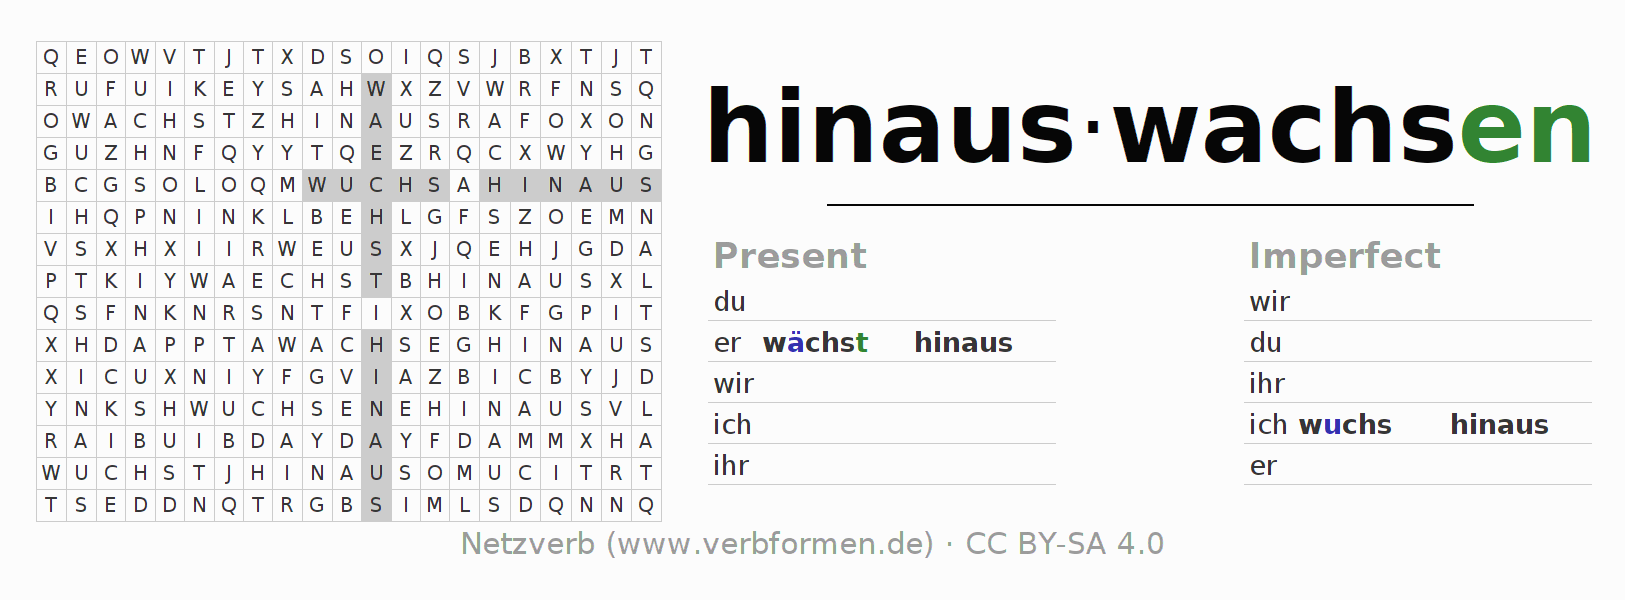 Word search puzzle for the conjugation of the verb hinauswachsen